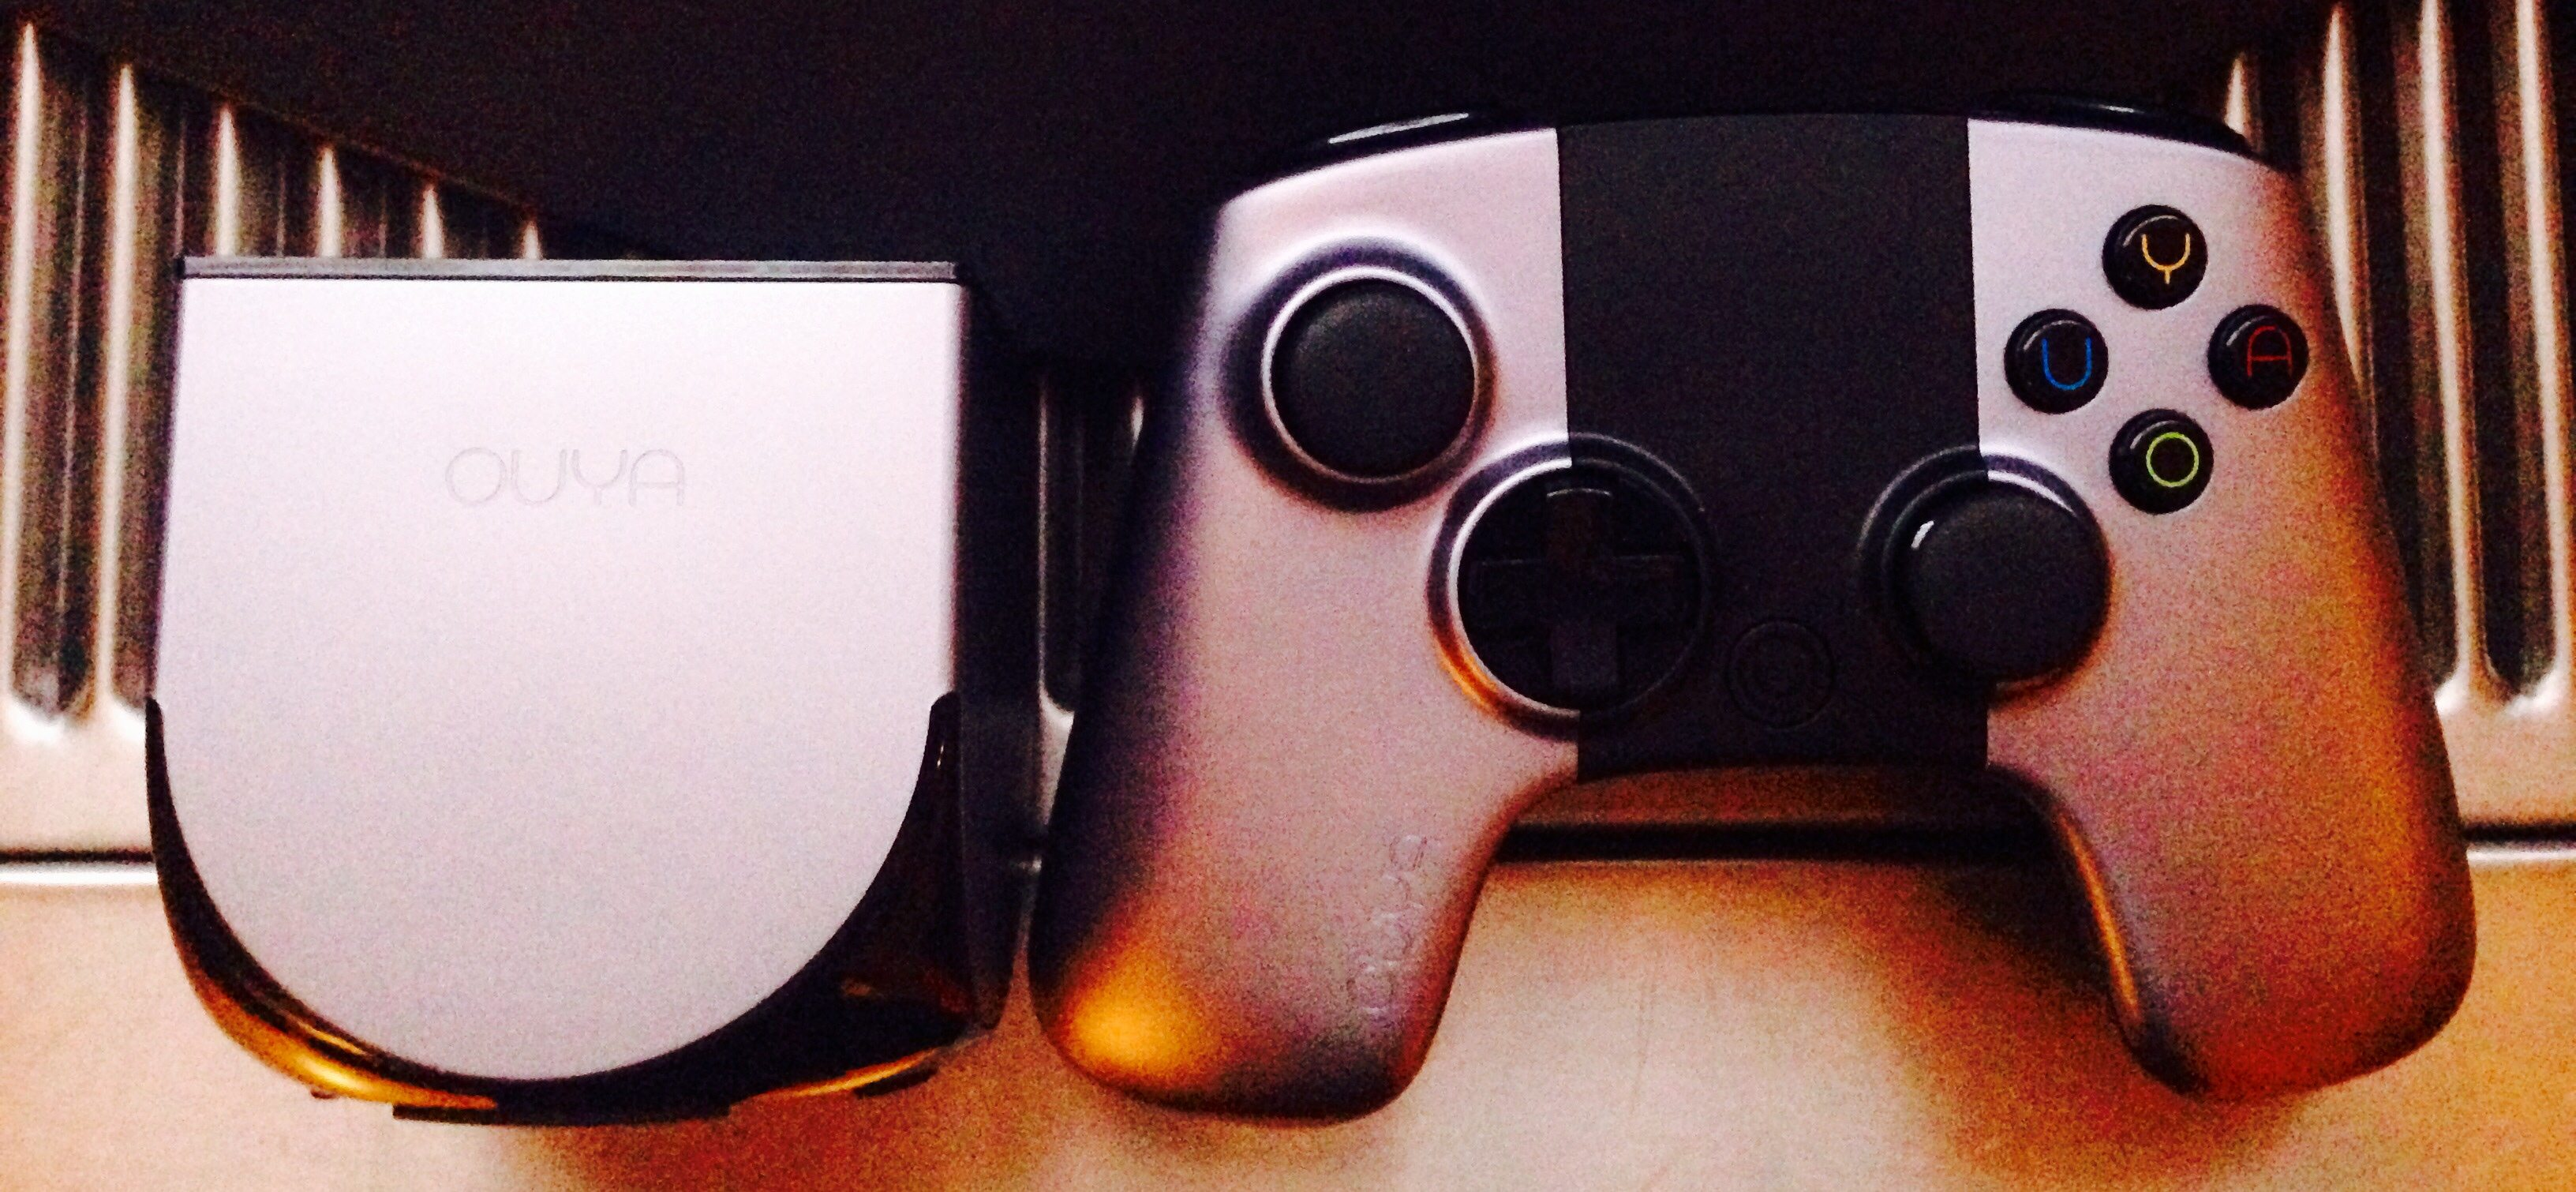 OUYA: A Good Gaming System for Geeks